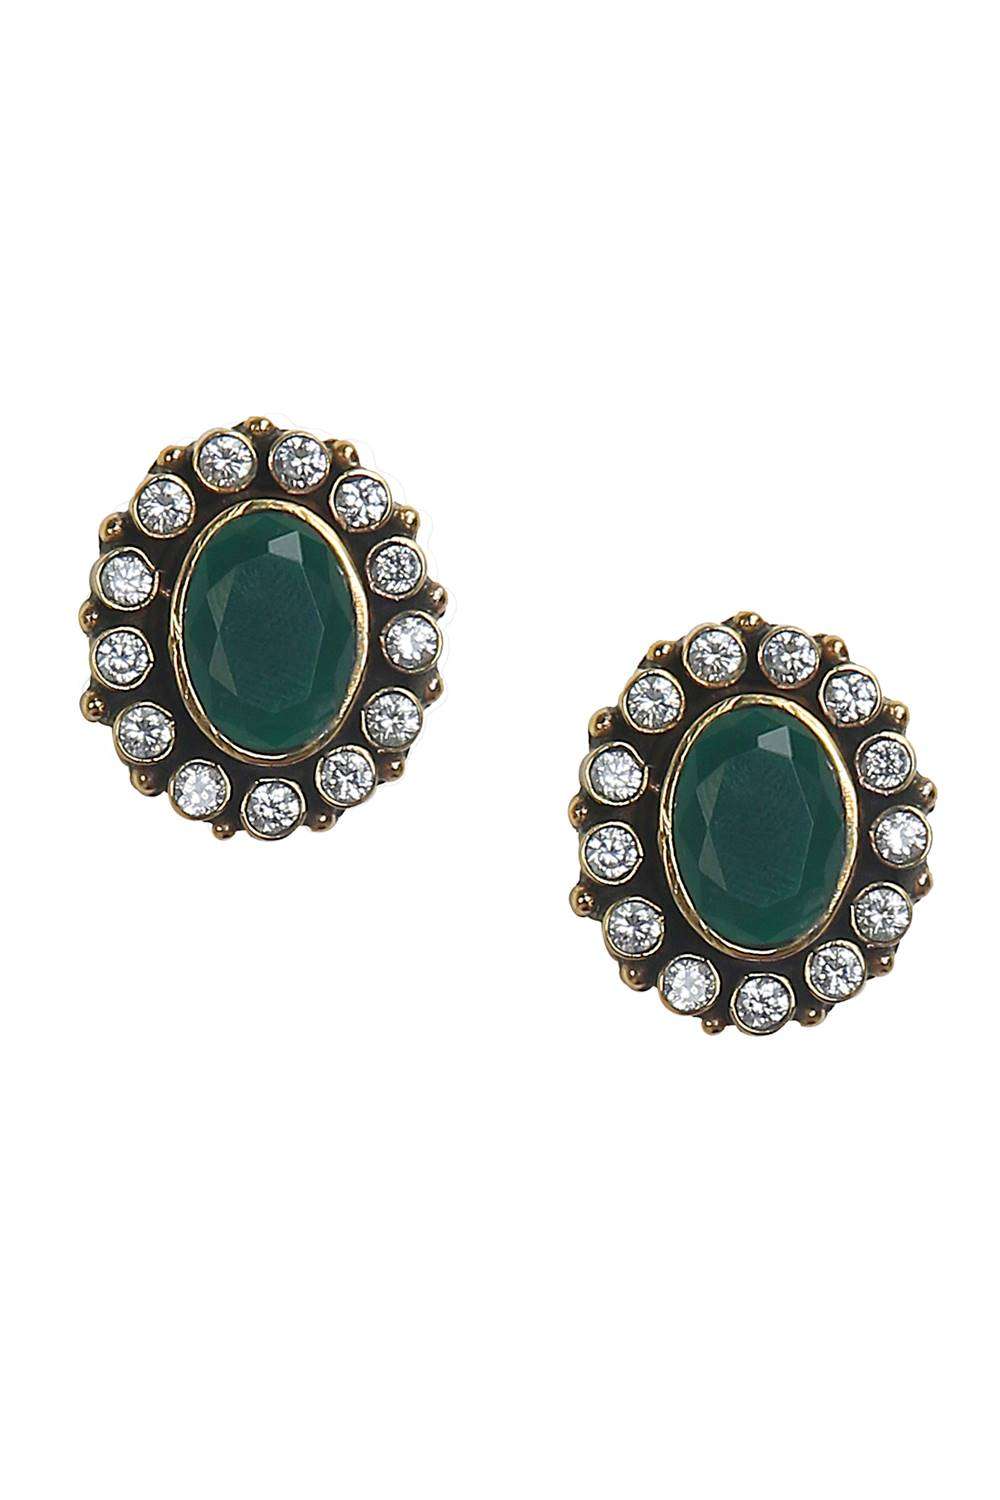 white stone com earrings stud shop green stones gold with emerald caellisar